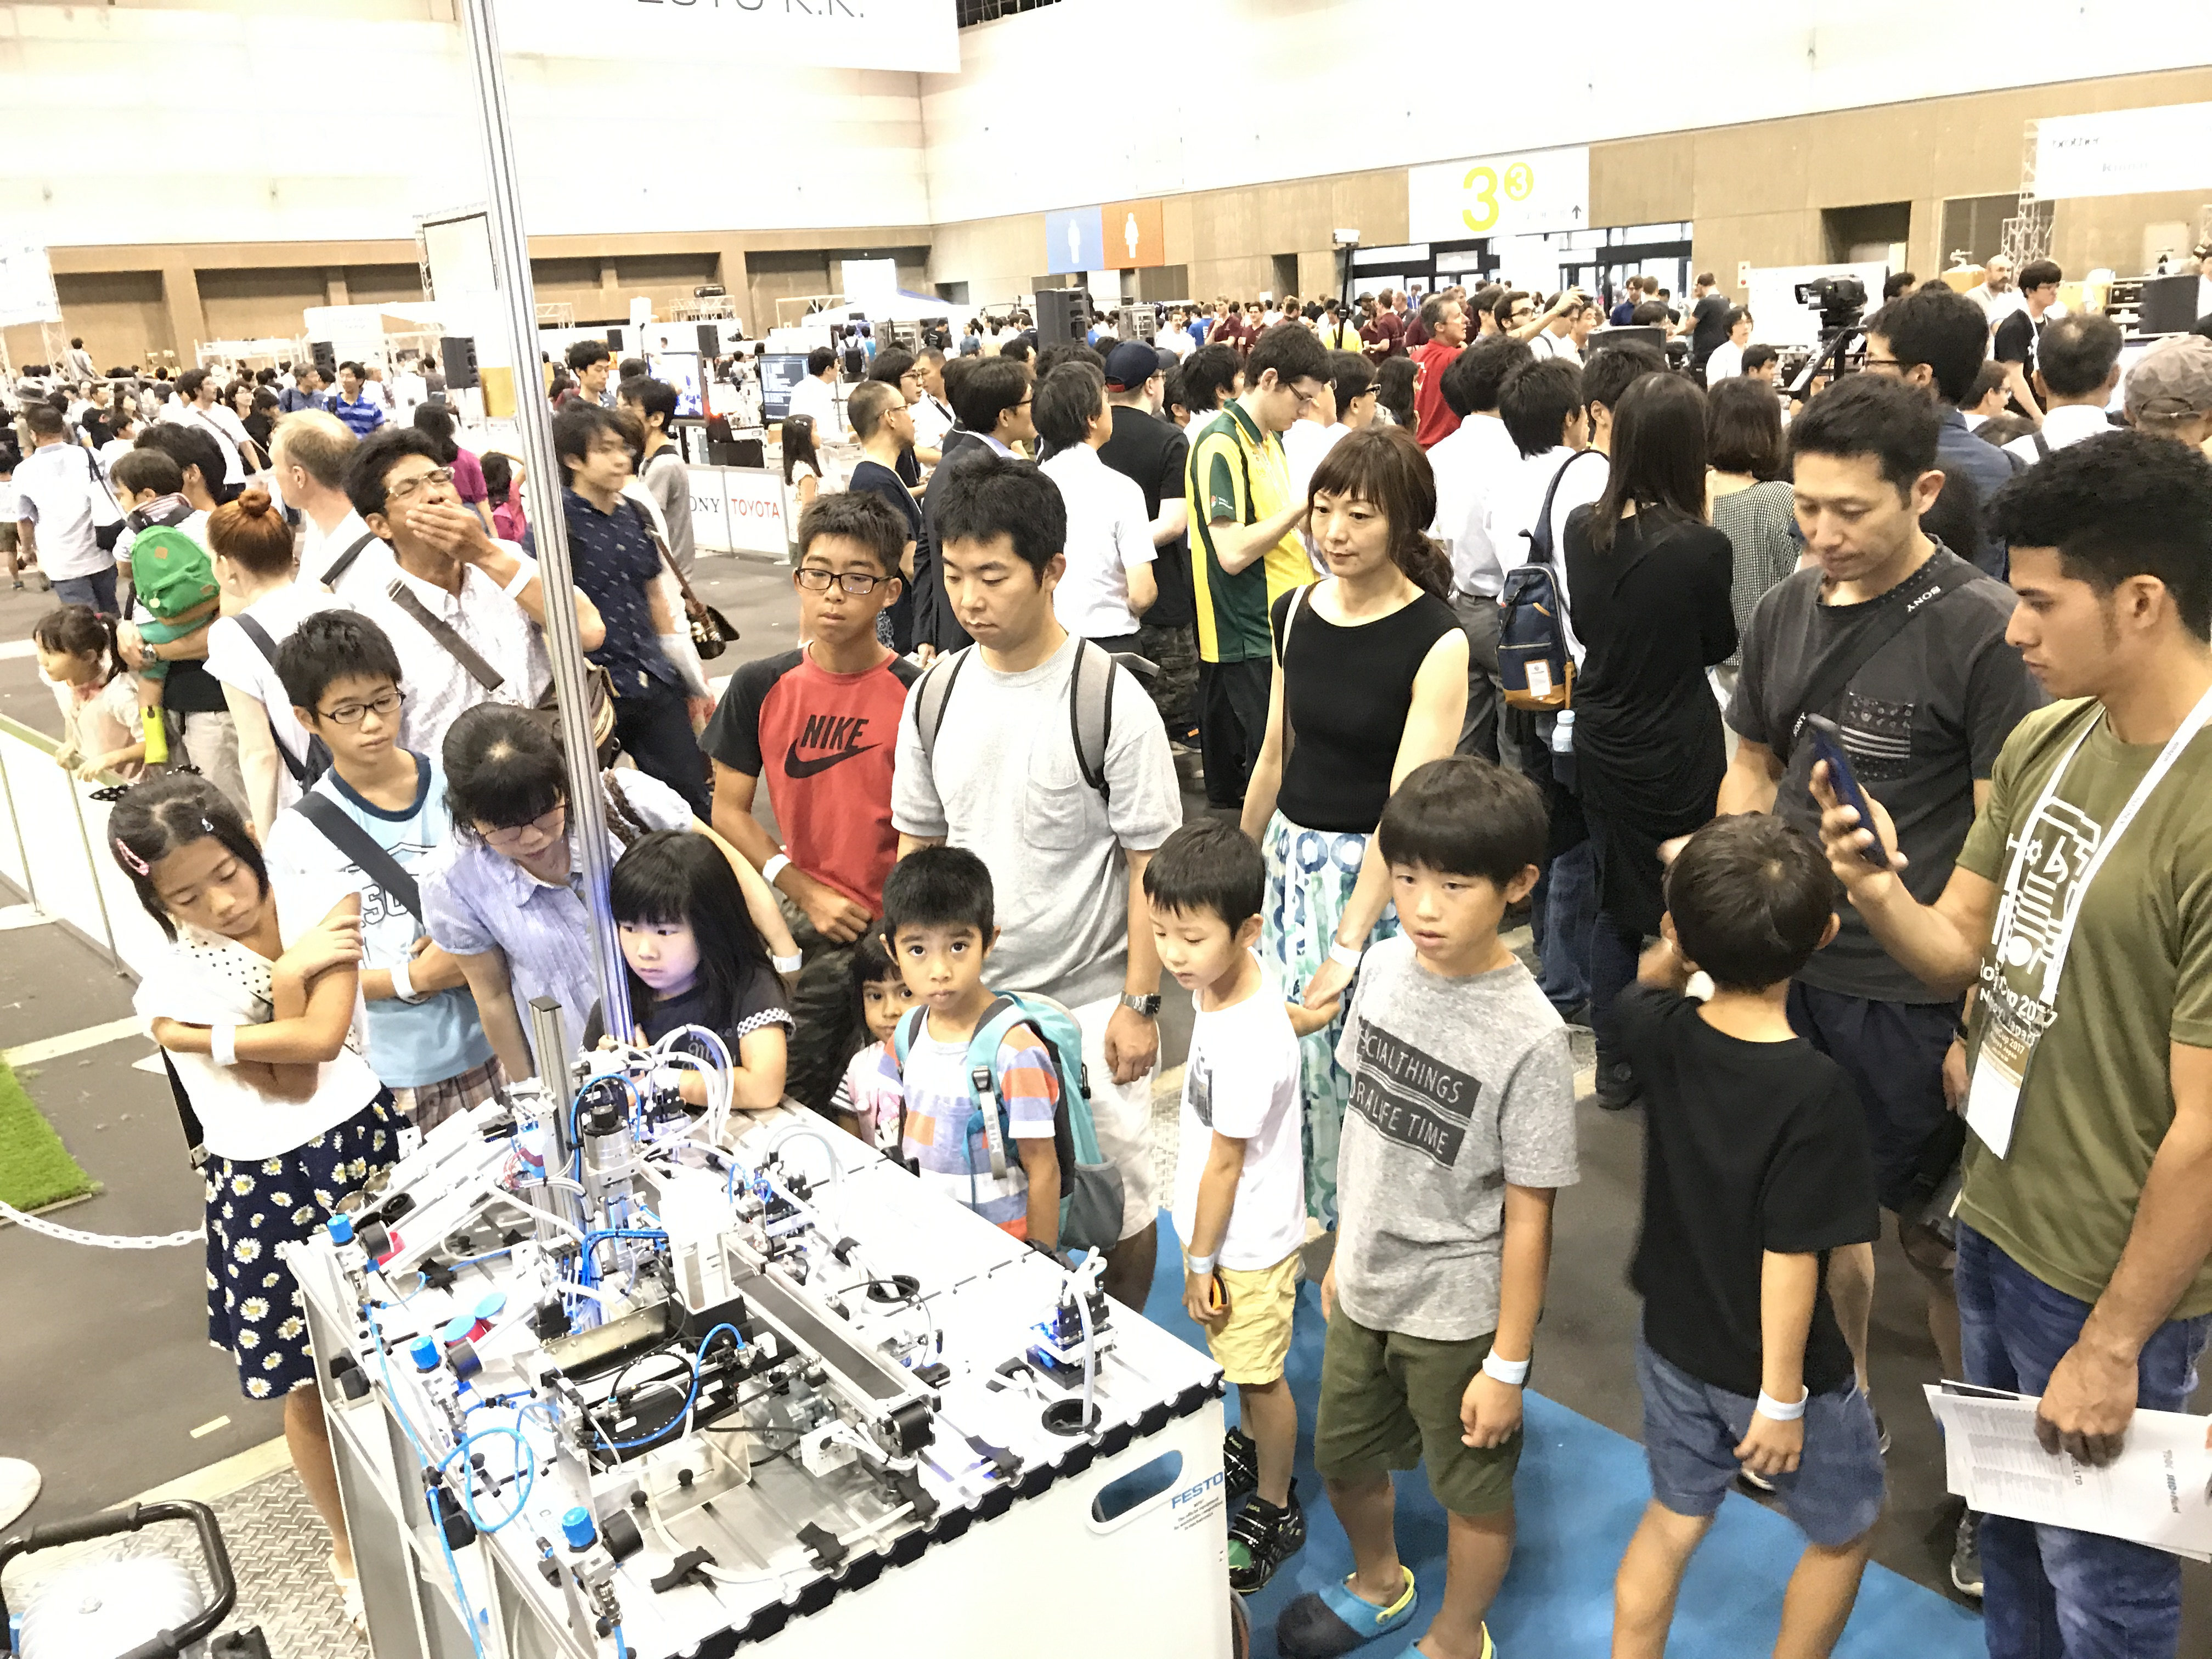 robocup2017booth2.JPG